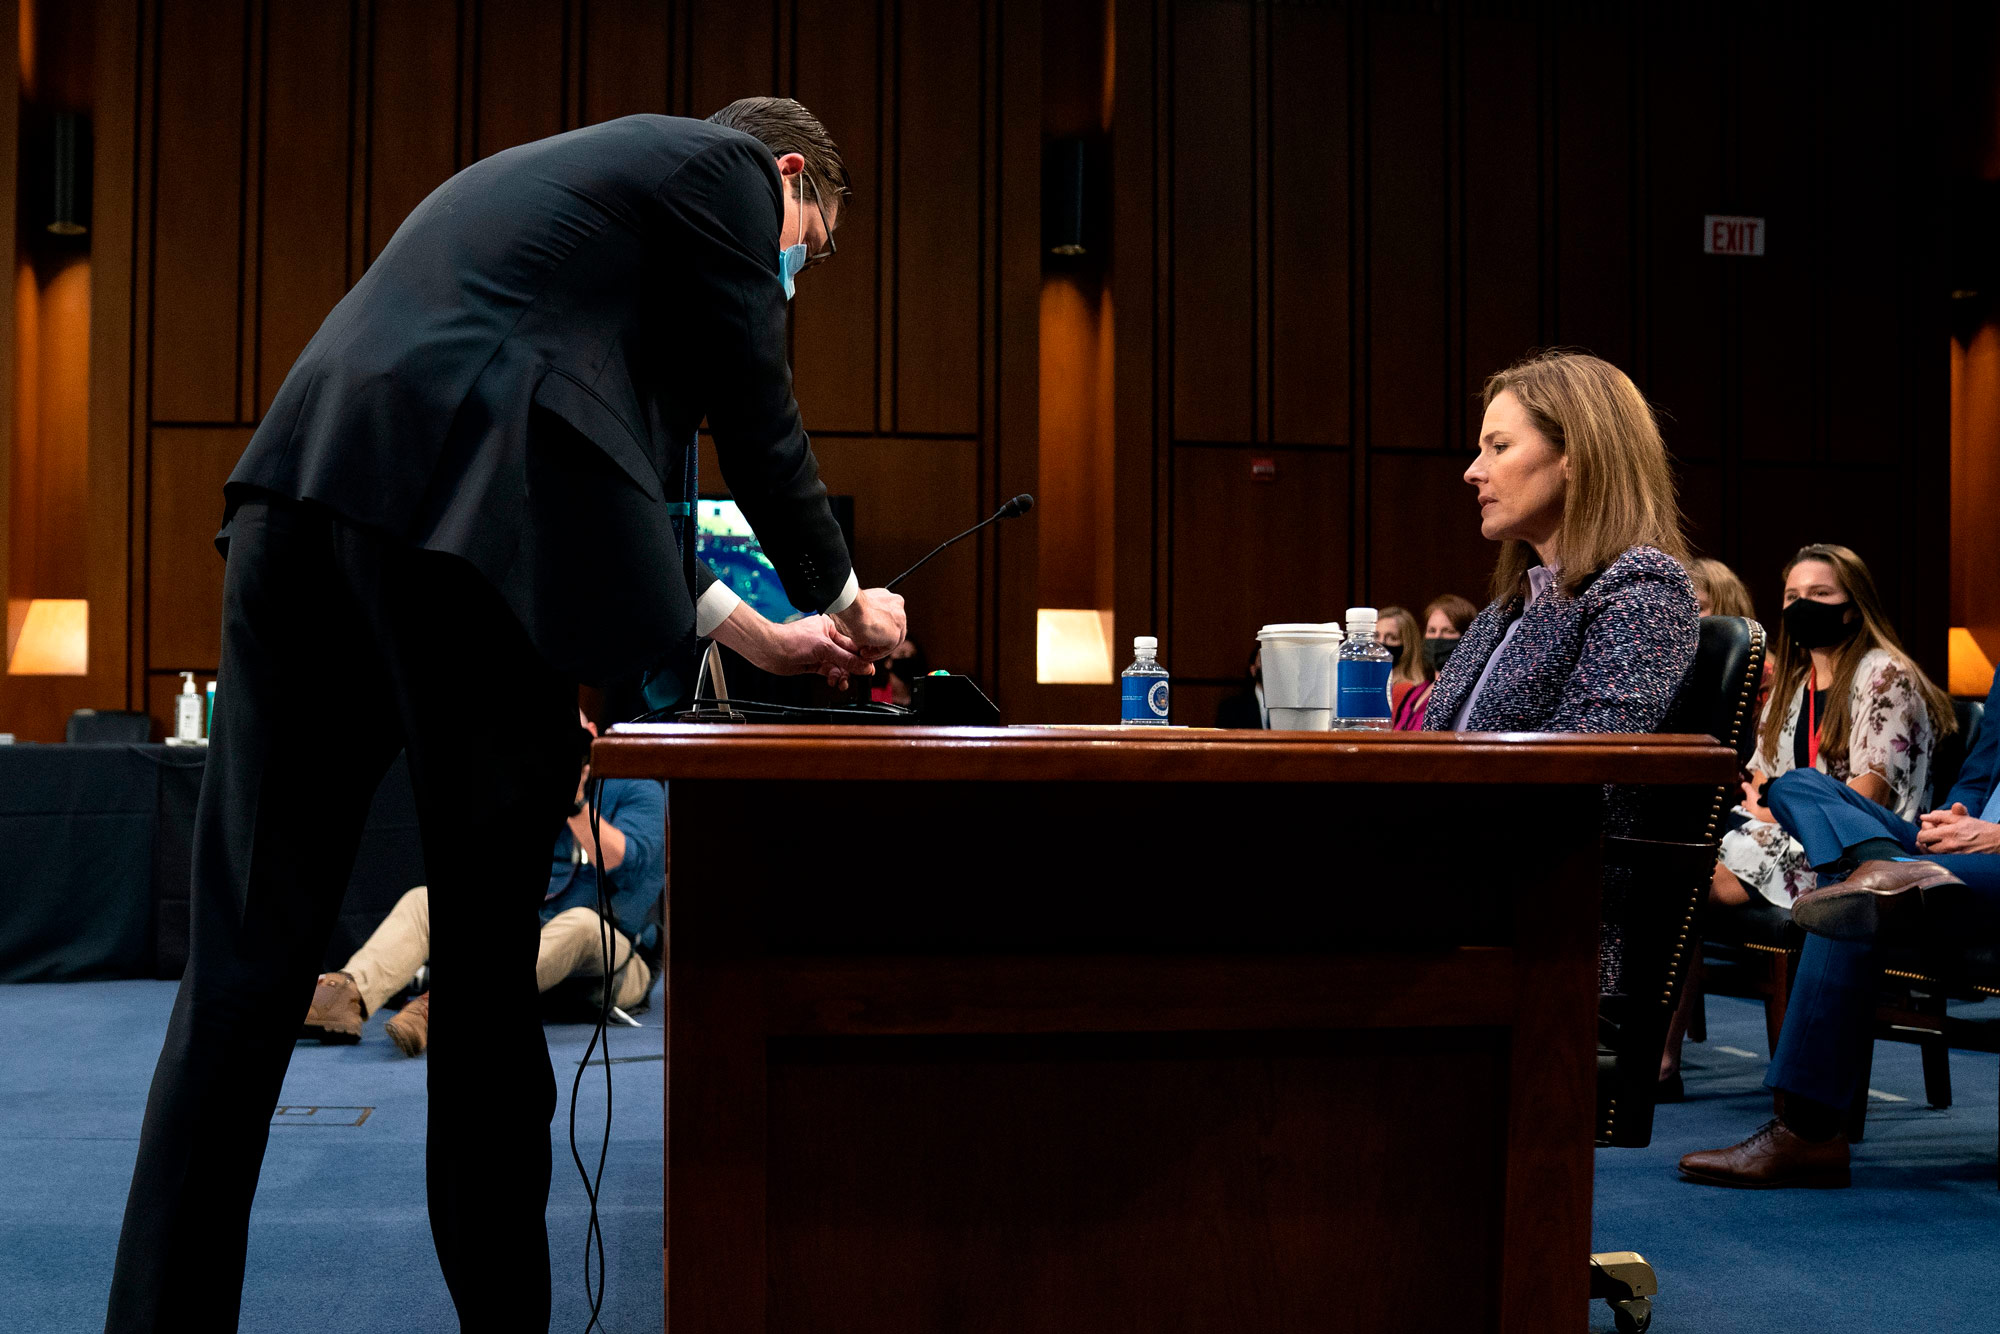 A staff member, left, attempts to fix the microphone for Judge Amy Coney Barrett during a Senate Judiciary Committee confirmation hearing in Washington, DC, on October 14.